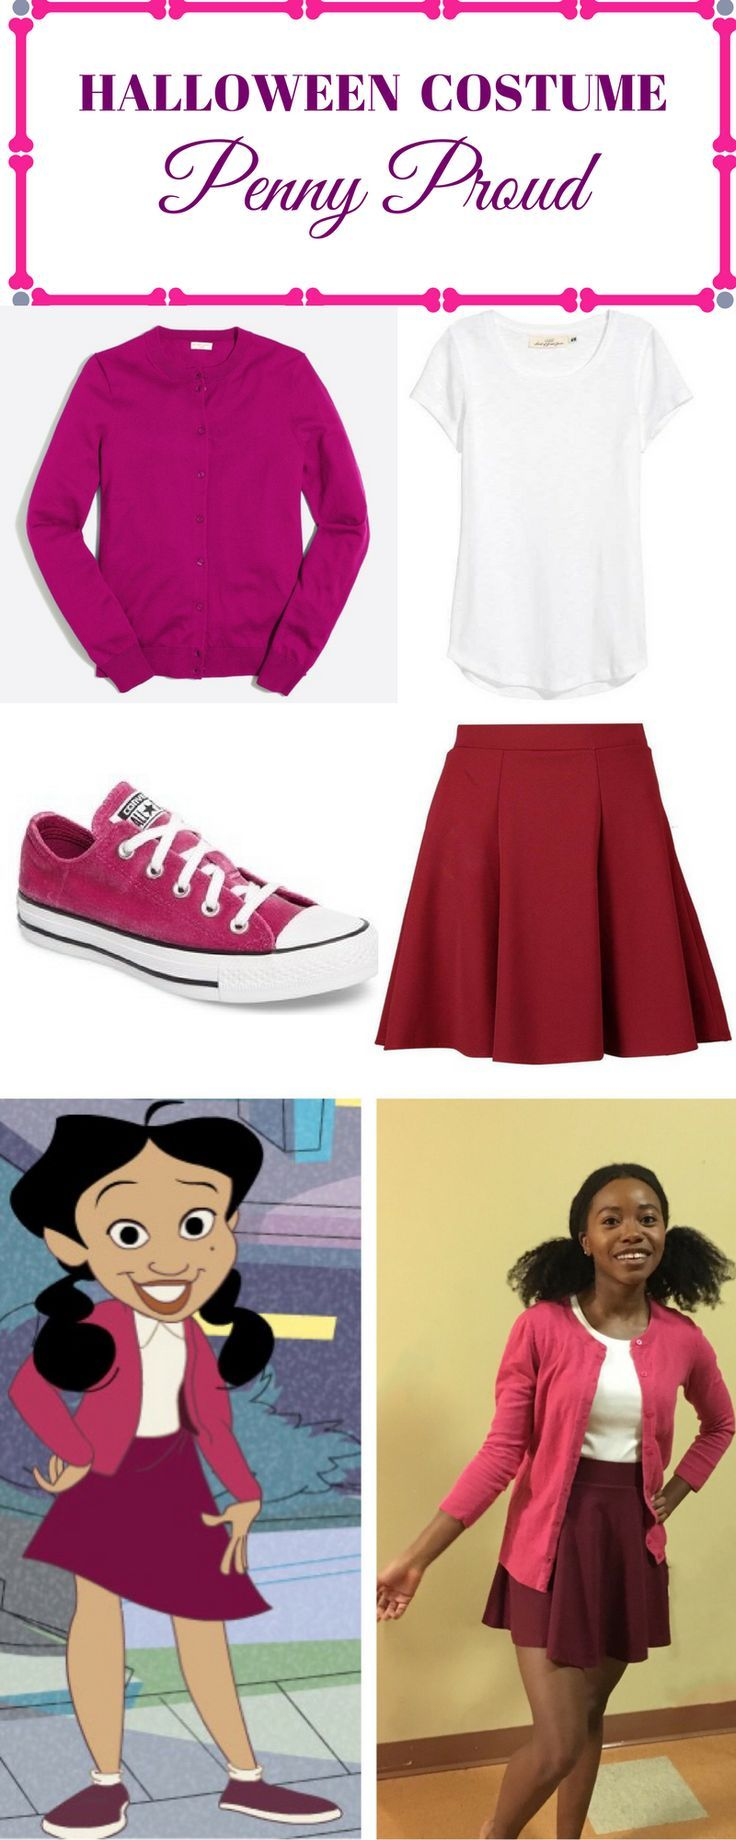 Becoming penny proud for halloween